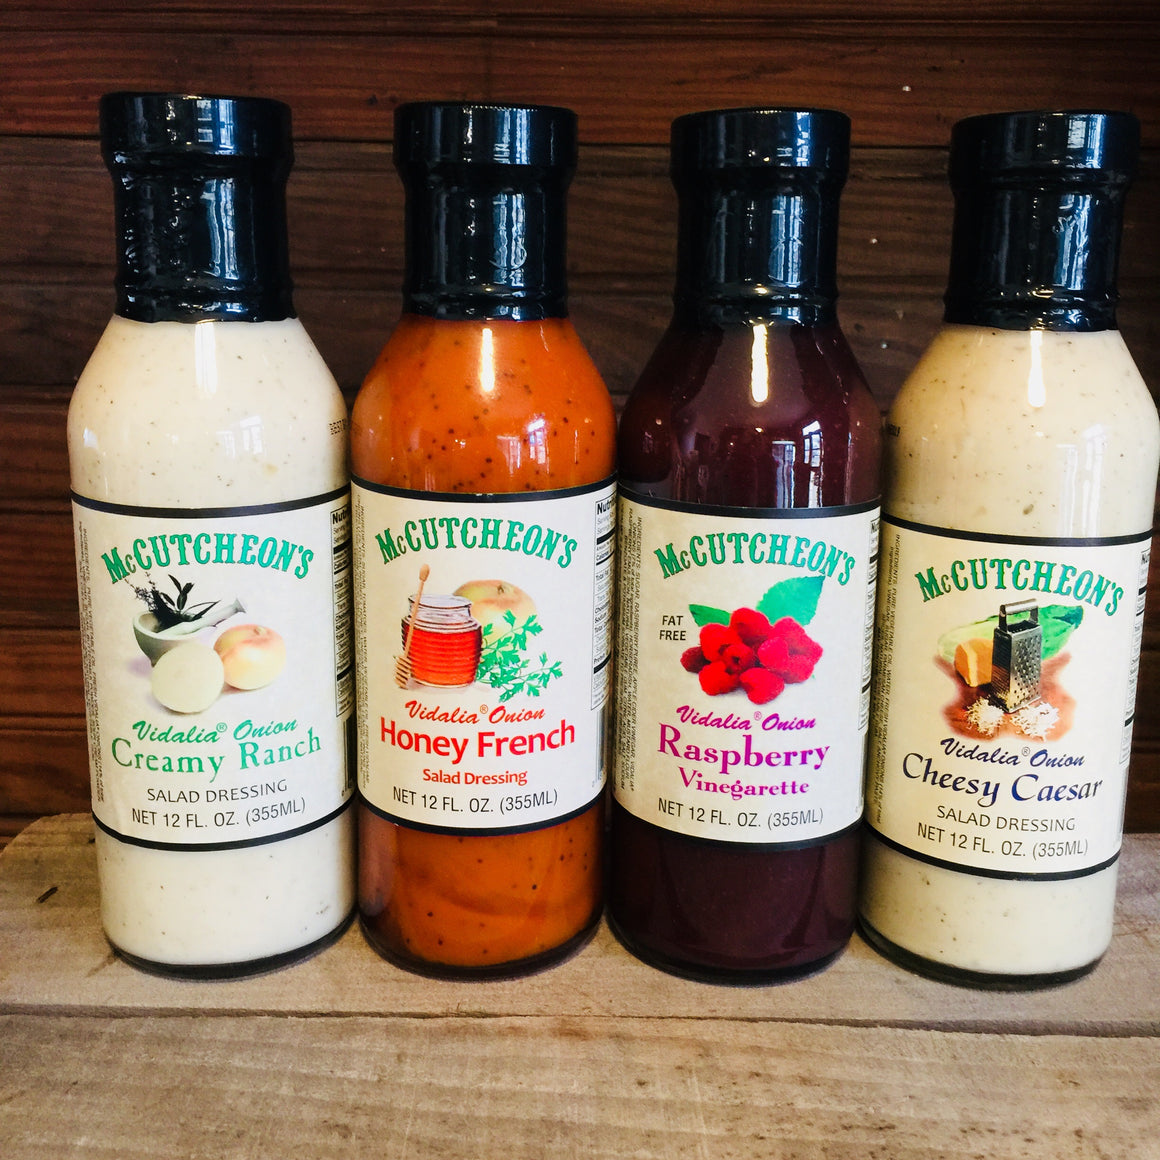 McCutcheon's Salad Dressings